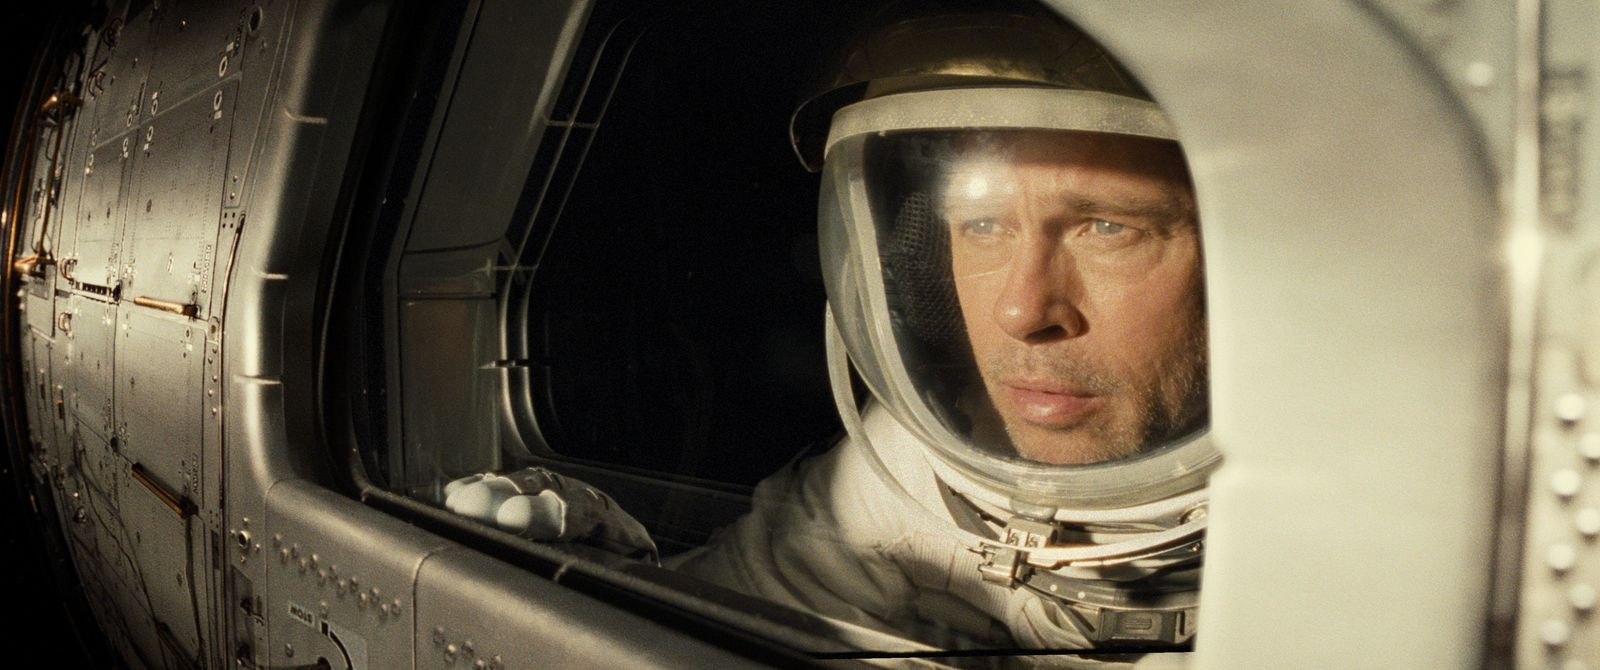 Brad Pitt and James Gray take a giant leap with 'Ad Astra' (Photo: Courtesy of Ryan Painter, KUTV, via Twentieth Century Fox)